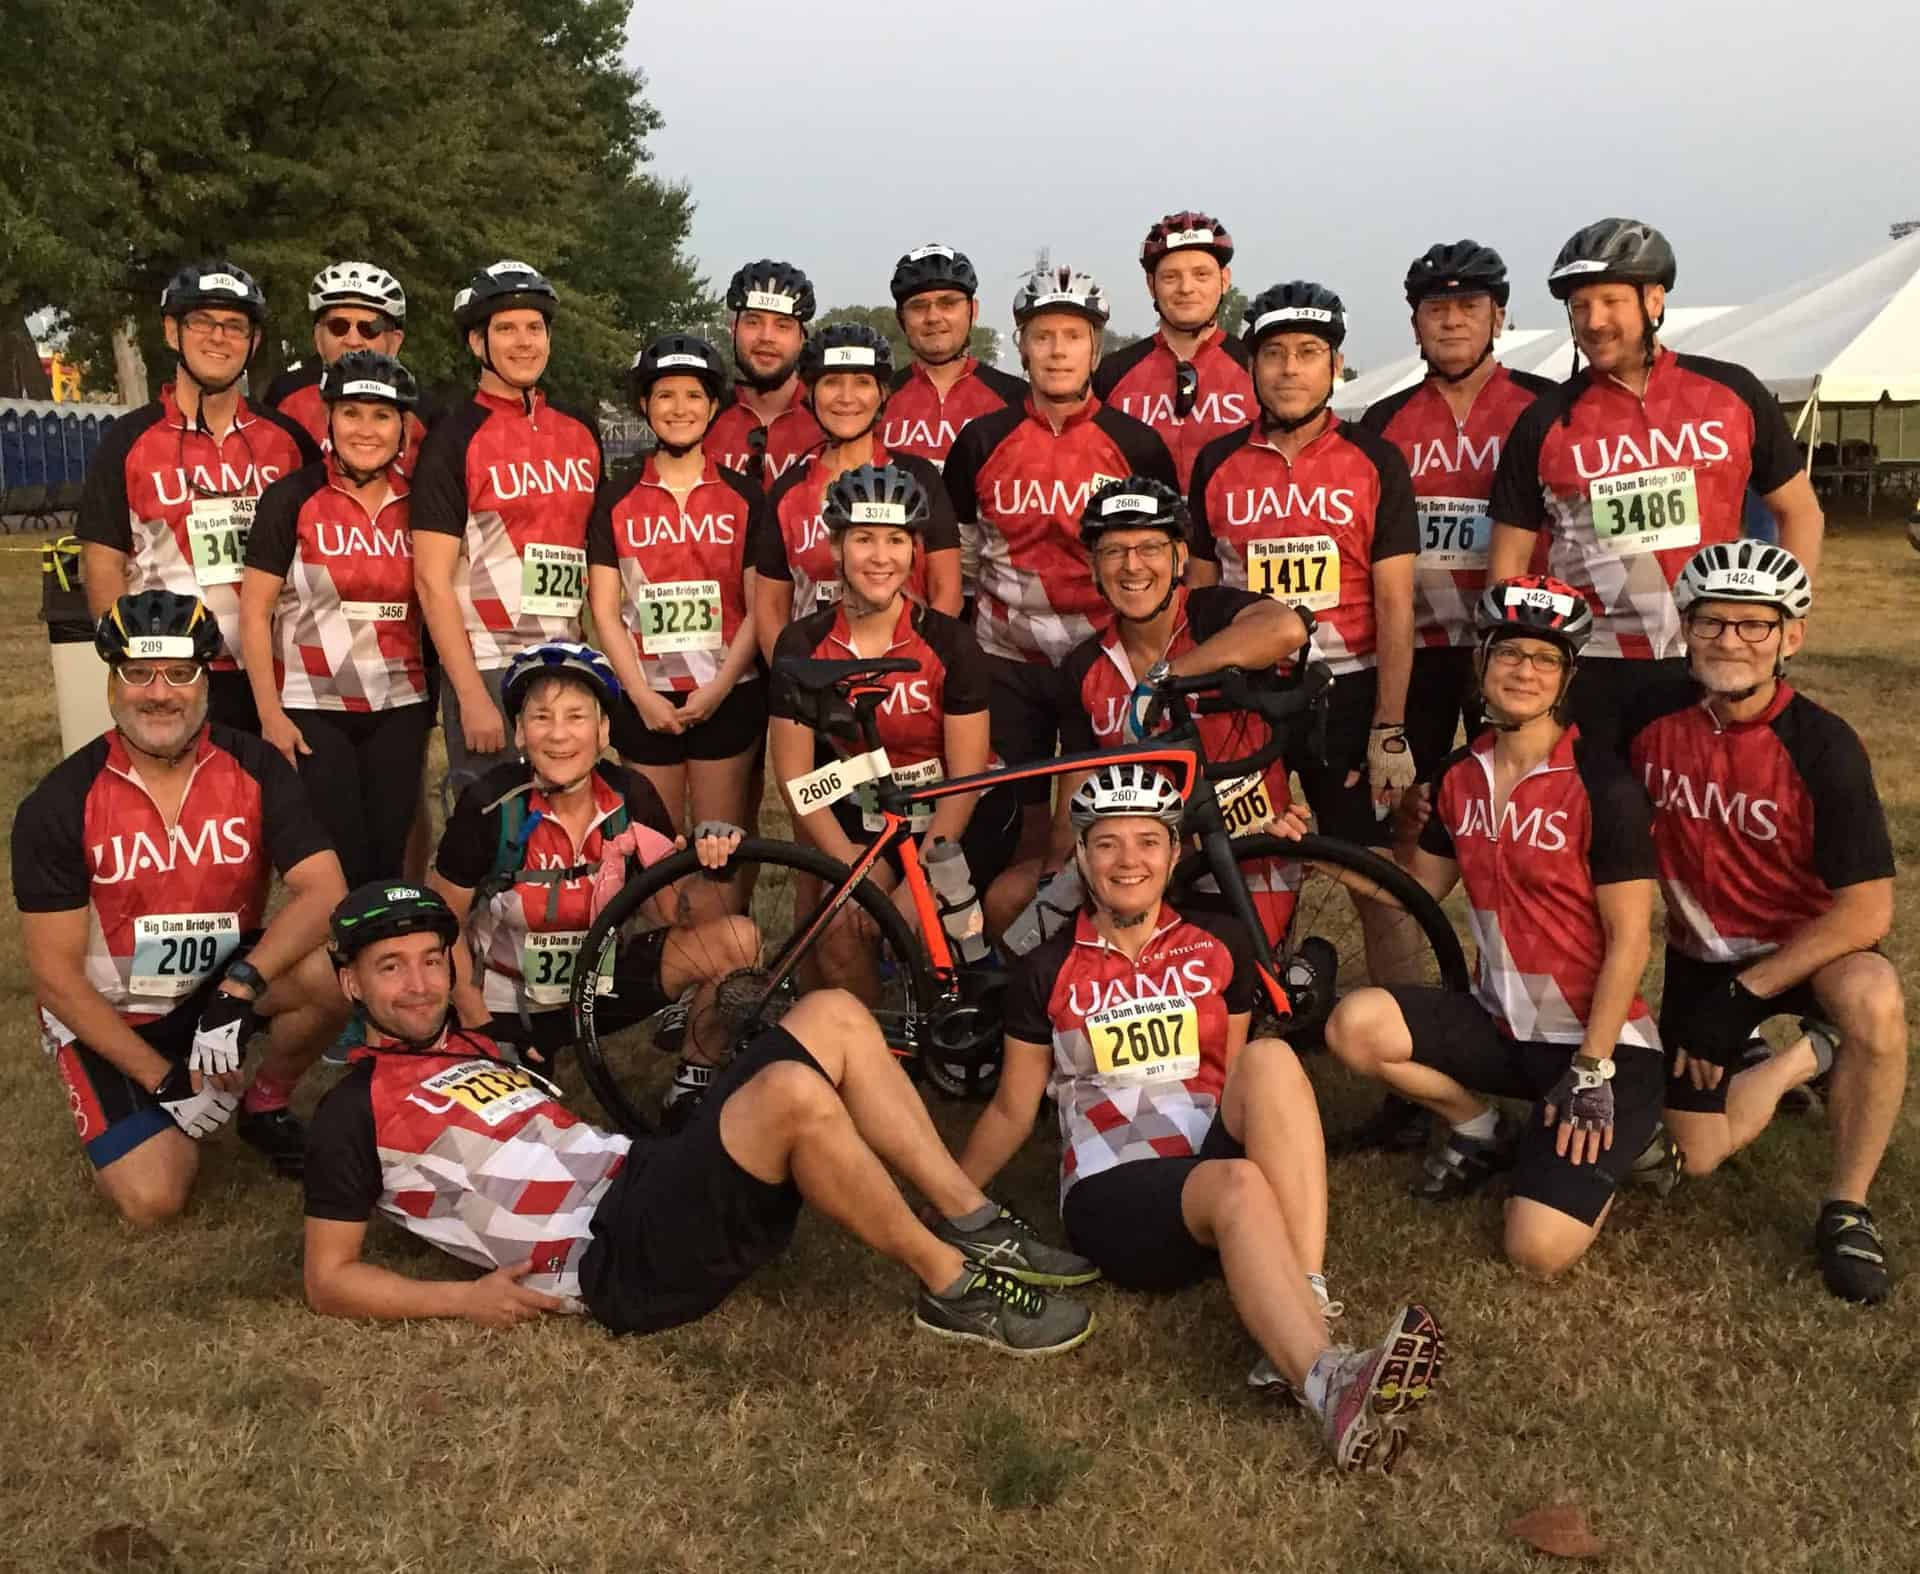 Ride for Research Team UAMS